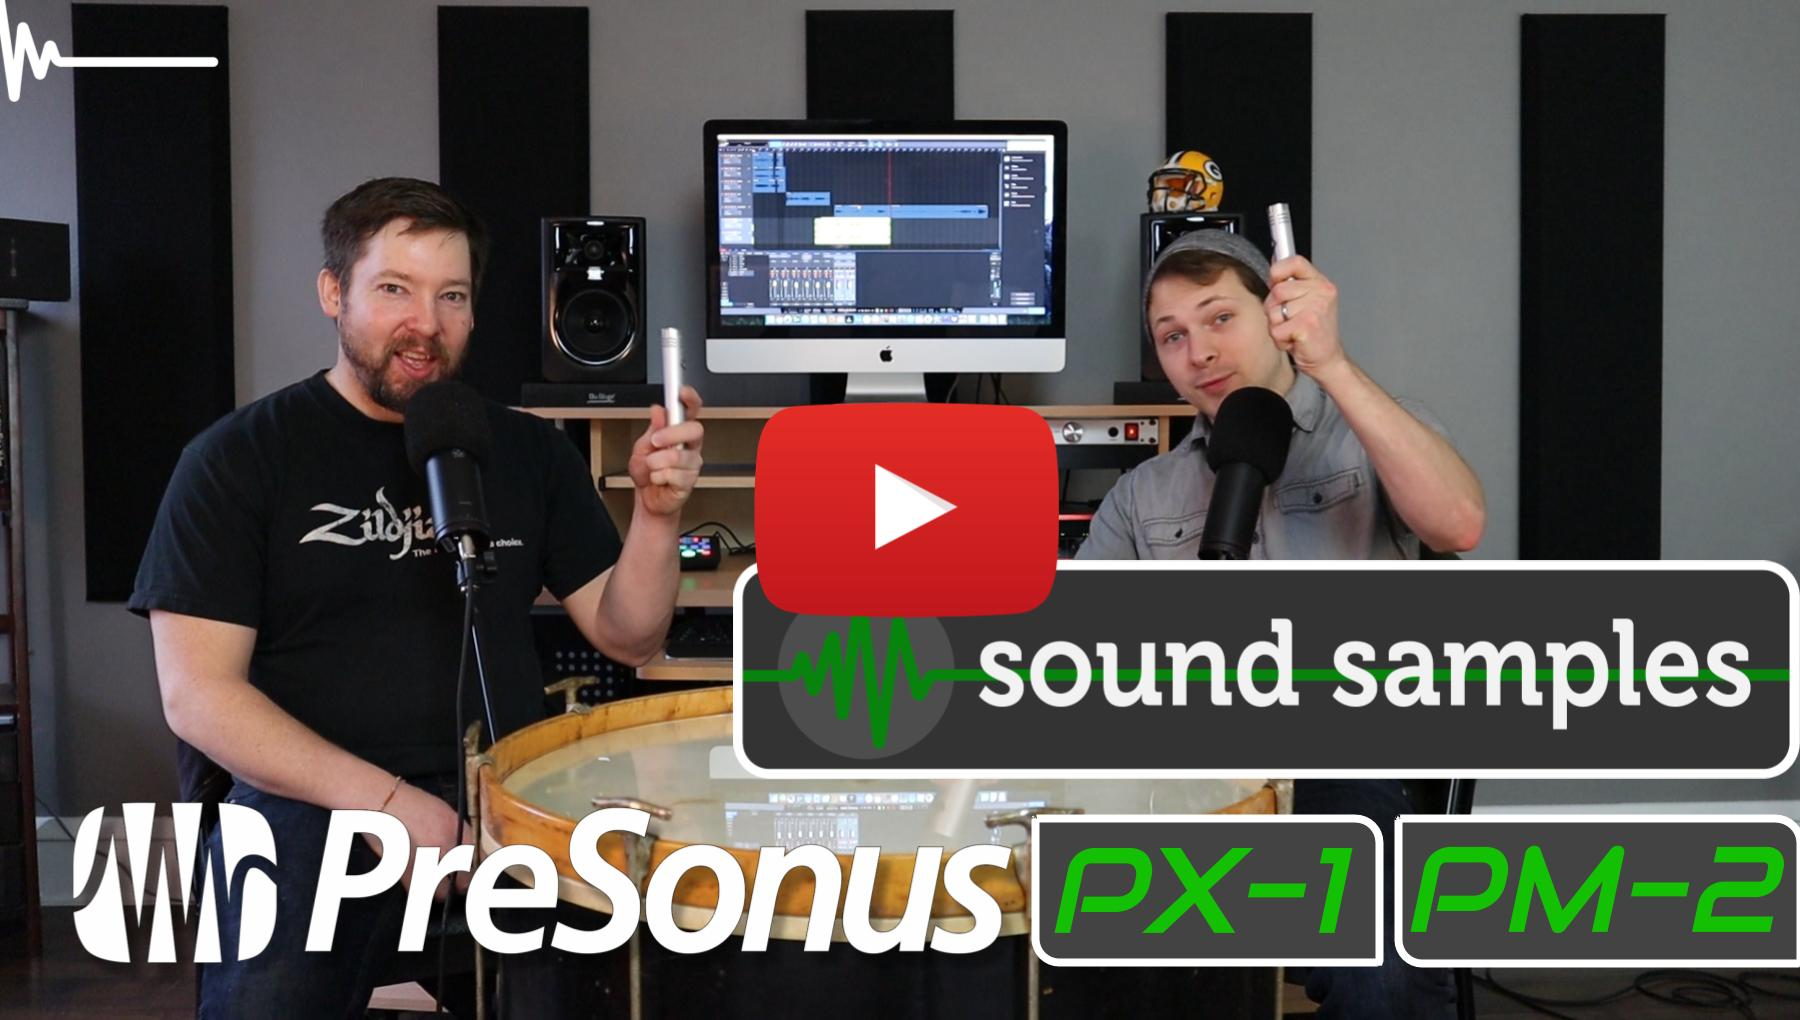 Weekly Show - PPA Unfiltered - PreSonus PX-1 and PM-2 Sound Samples!